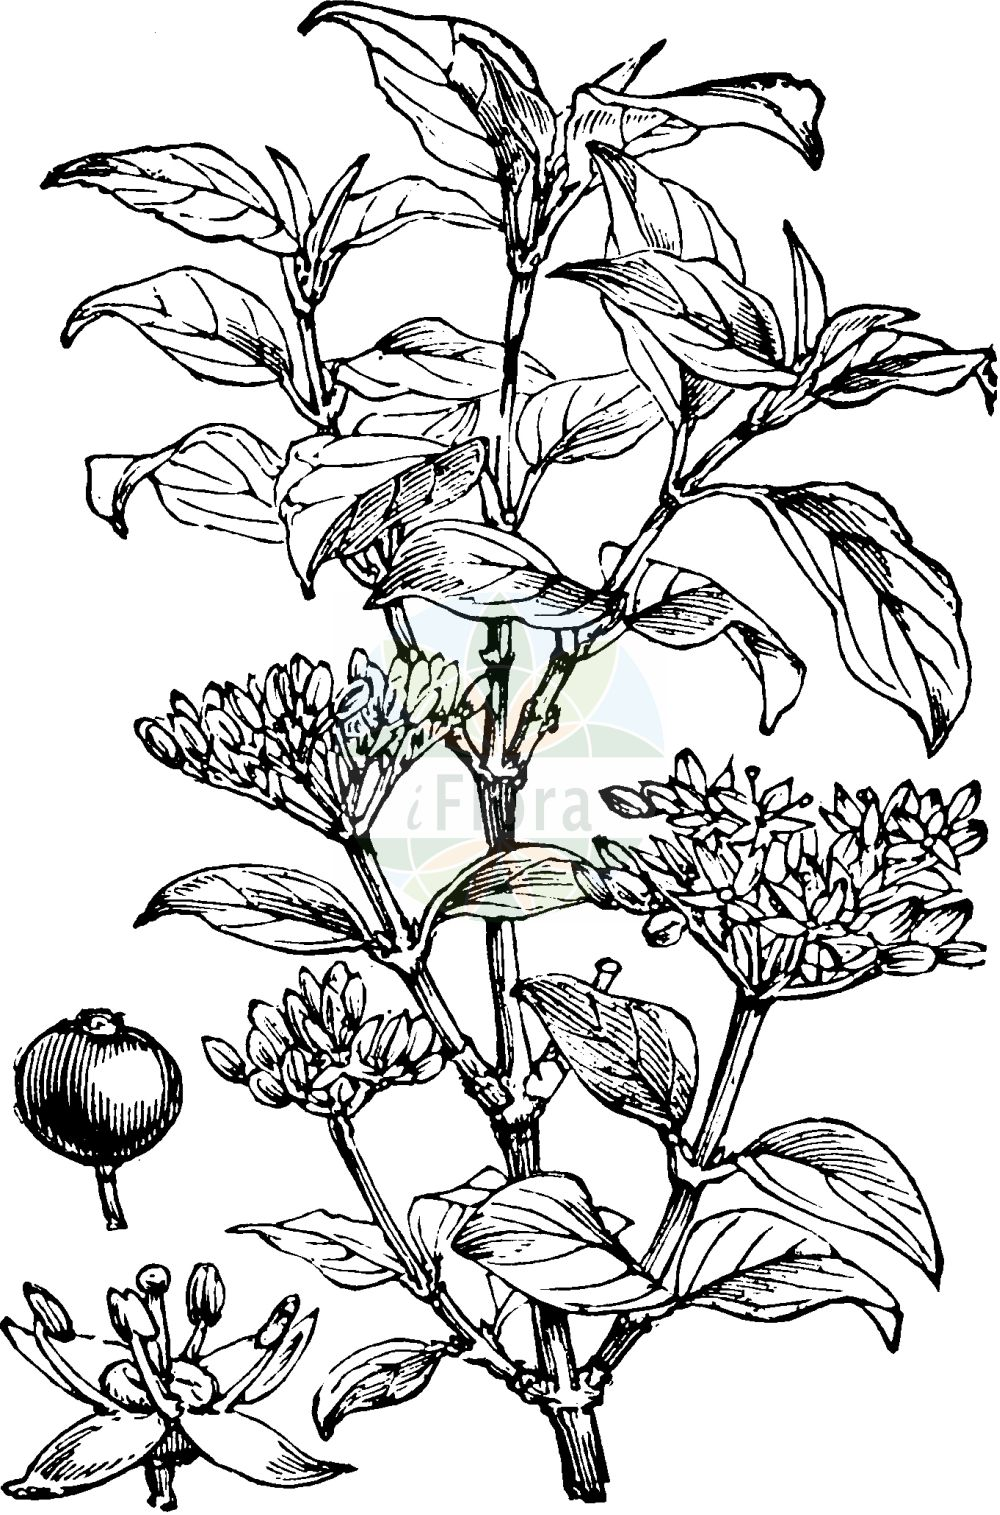 Historische Abbildung von Cornus sanguinea (Blutroter Hartriegel - Dogwood). Das Bild zeigt Blatt, Bluete, Frucht und Same. ---- Historical Drawing of Cornus sanguinea (Blutroter Hartriegel - Dogwood).The image is showing leaf, flower, fruit and seed.(Cornus sanguinea,Blutroter Hartriegel,Dogwood,Cornus sanguinea,Swida sanguinea,Thelycrania sanguinea,Blutroter Hartriegel,Roter Hartriegel,Roter Hornstrauch,Rot-Hartriegel,Dogwood,Blood-twig Cornel,Bloodtwig Dogwood,Bloody-twig Dogwood,Common Dogwood,Dogberry,Cornus,Hartriegel,Cornel,Cornaceae,Hartriegelgewaechse,Dogwood family,Blatt,Bluete,Frucht,Same,leaf,flower,fruit,seed,Fitch et al. (1880))